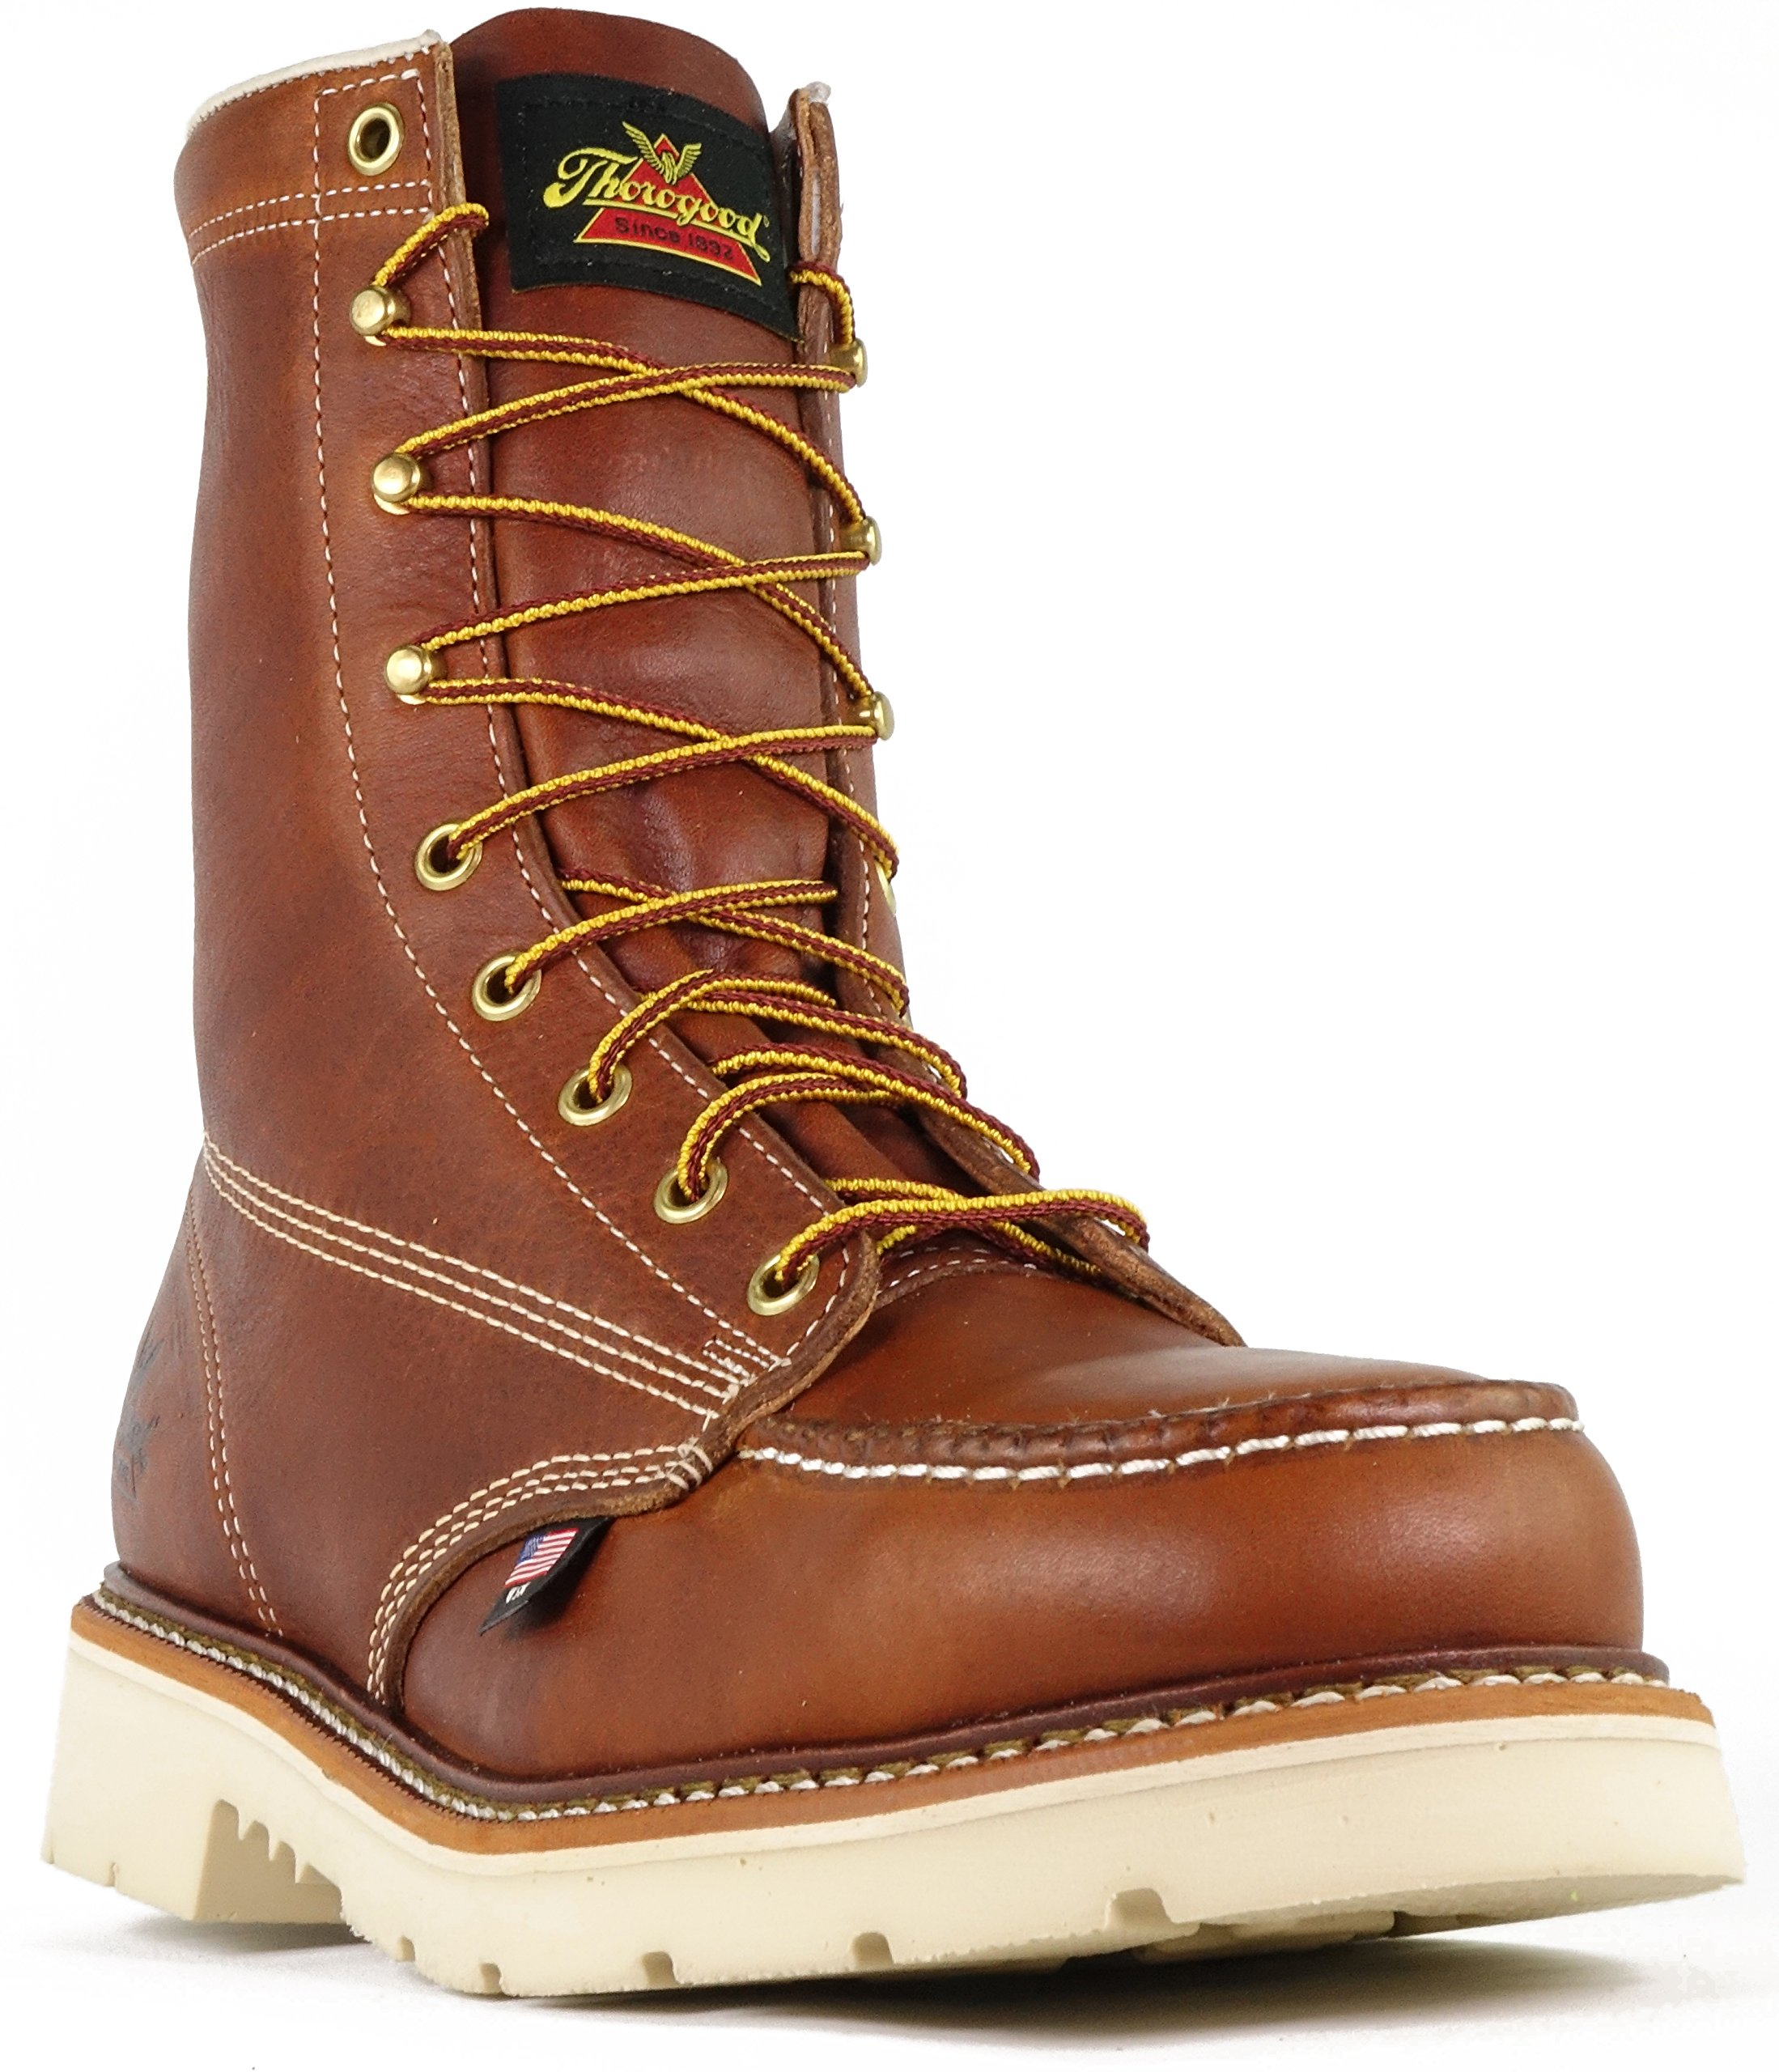 Thorogood 804-4308 Men's American Heritage 8'' Moc Toe, MAXWear 90 Safety Toe Boot, Tobacco Oil-Tanned - 11 D(M) US